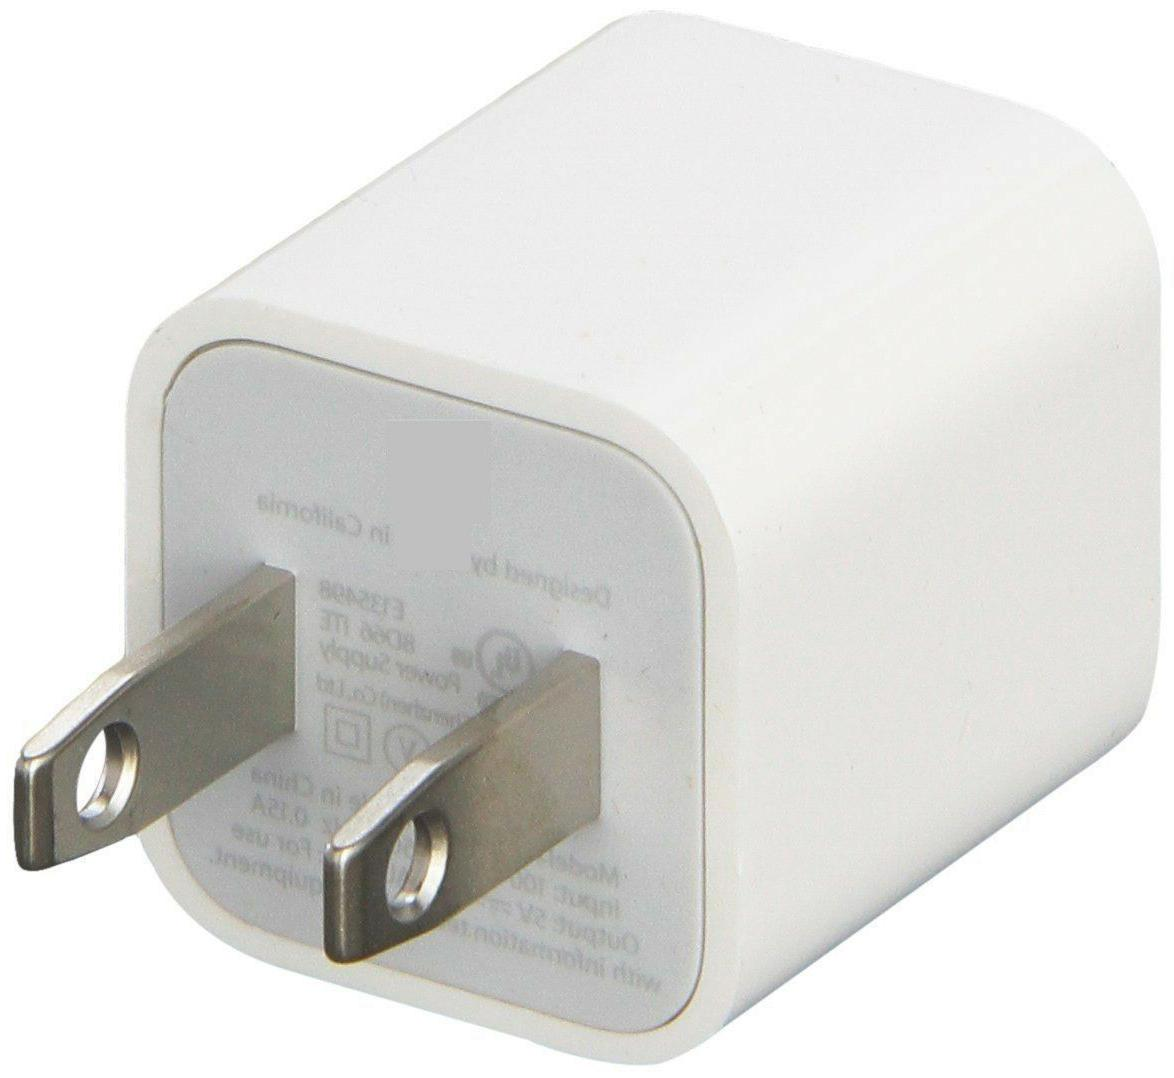 New 5W USB Power Adapter Charger Wall Plug for Apple iPhone